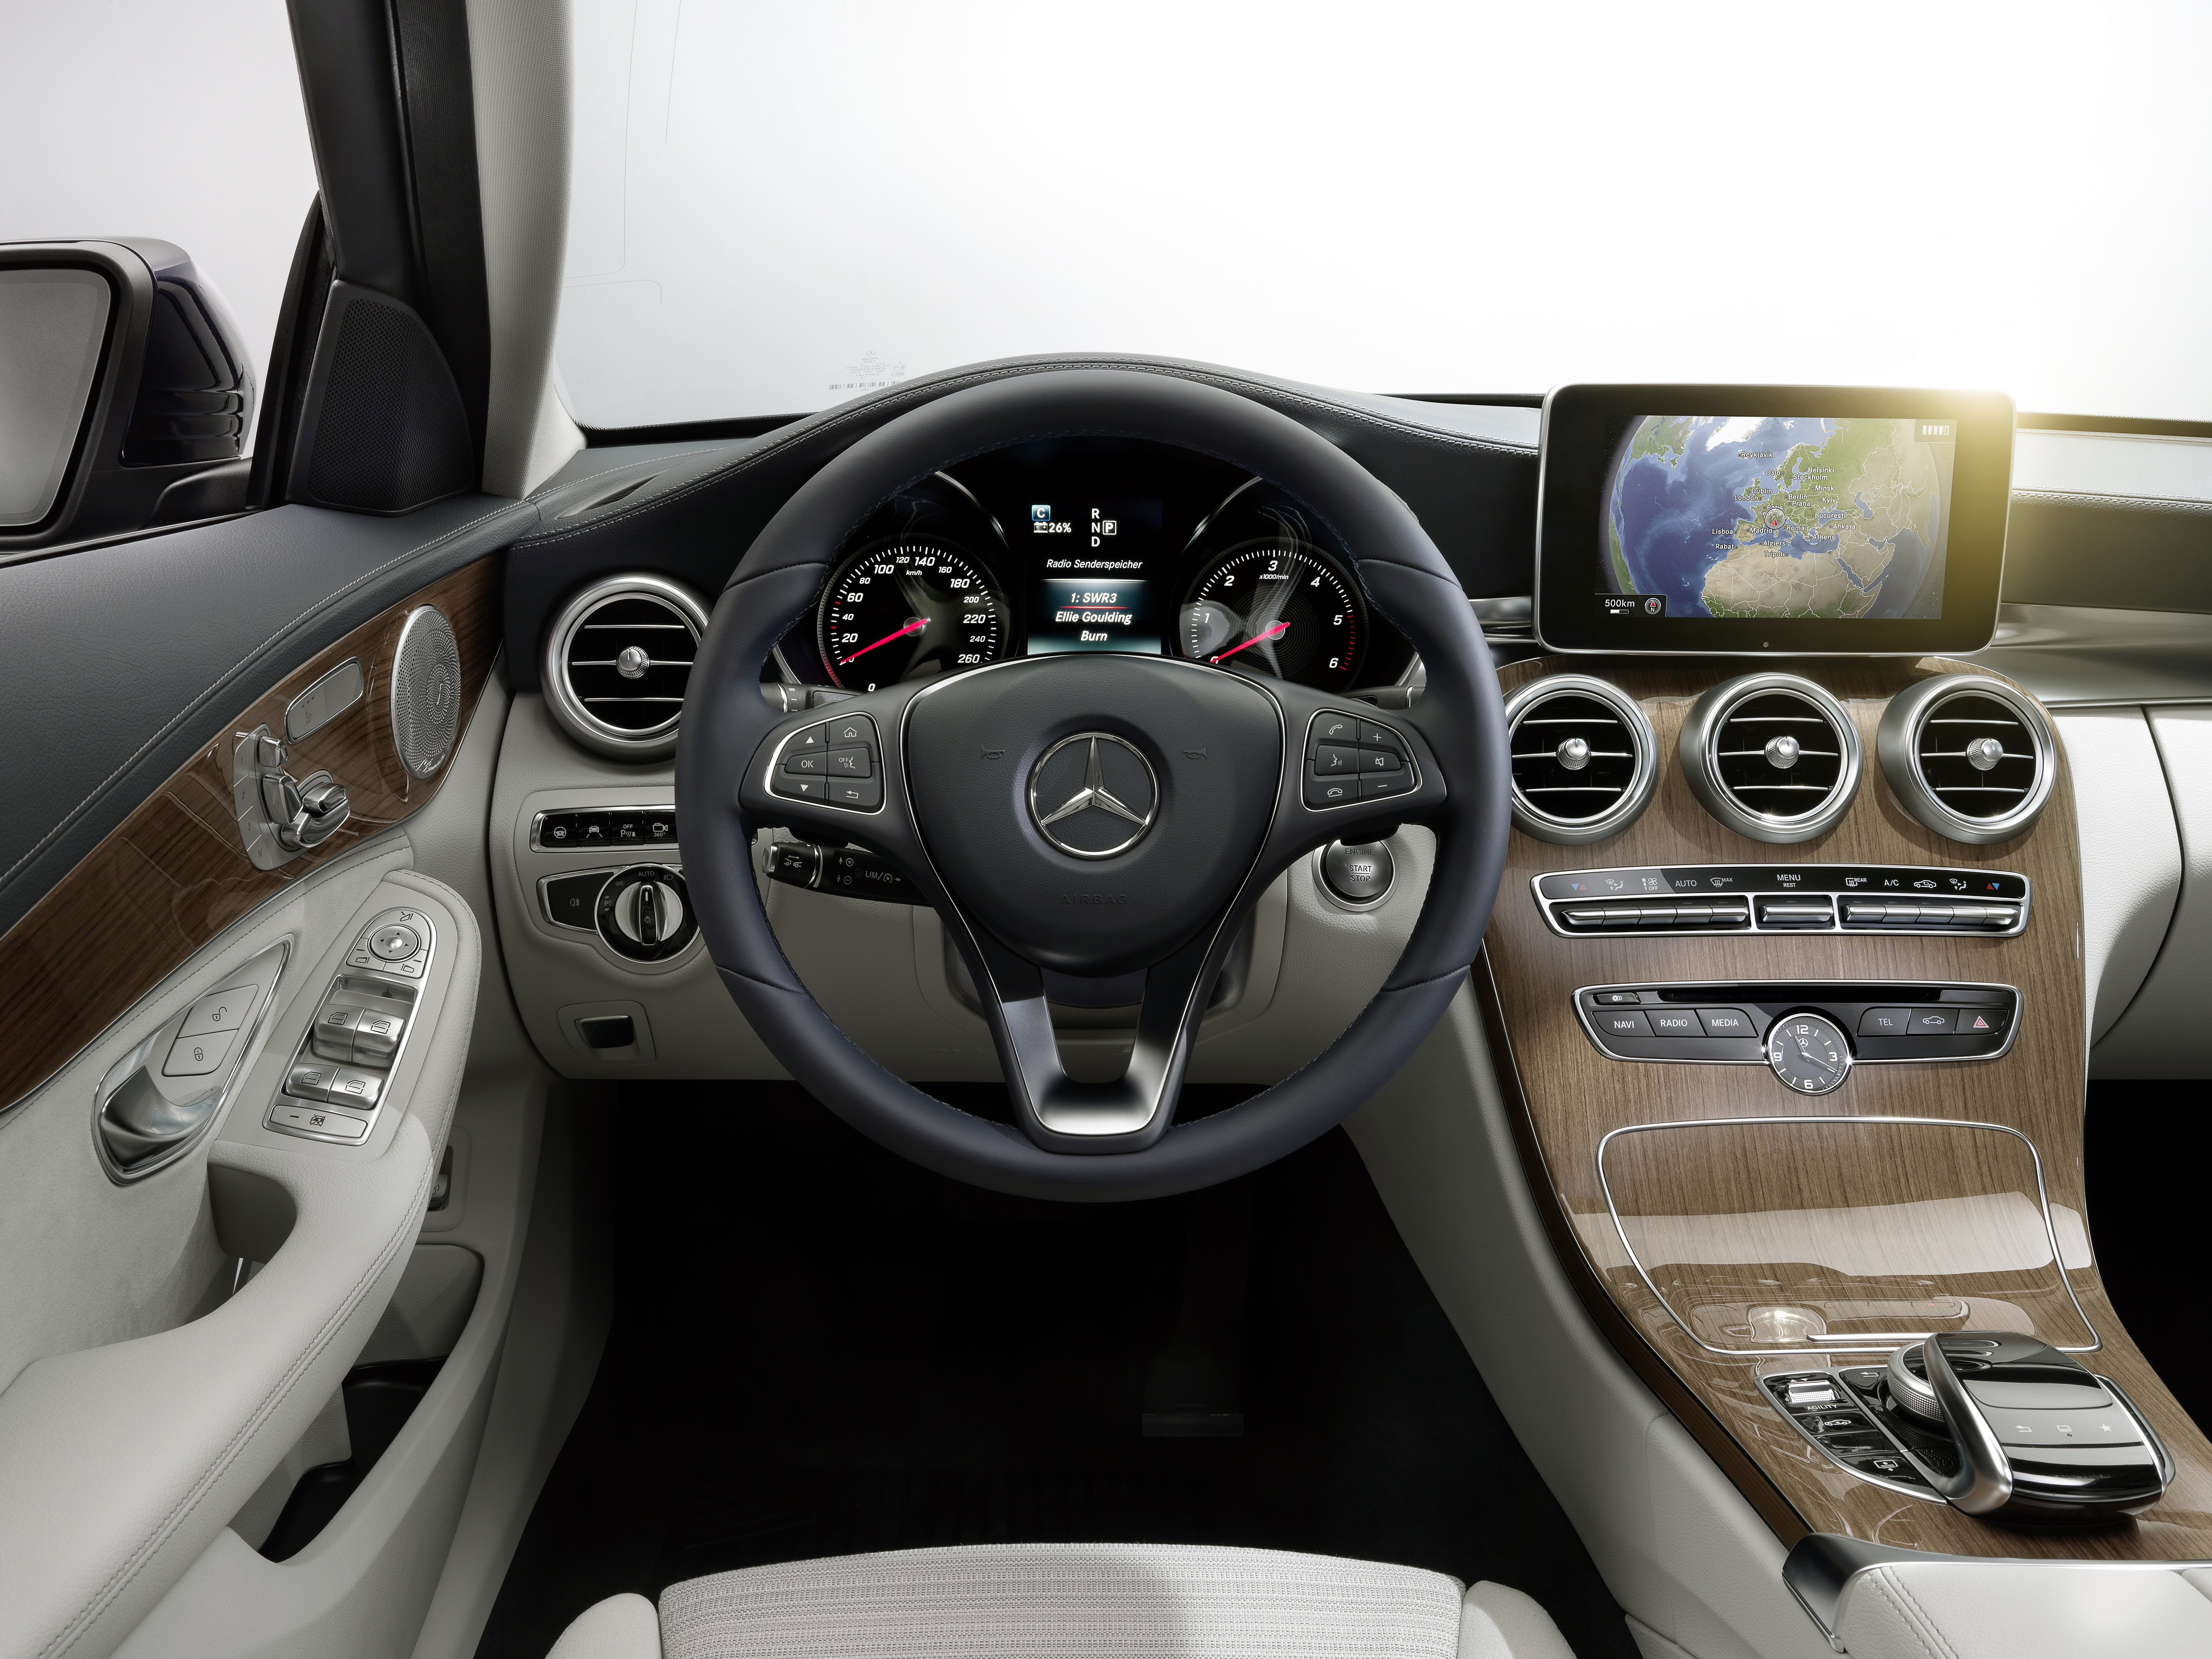 Mercedes Benz Amg >> W205 Mercedes-Benz C-Class: first details released! Image ...